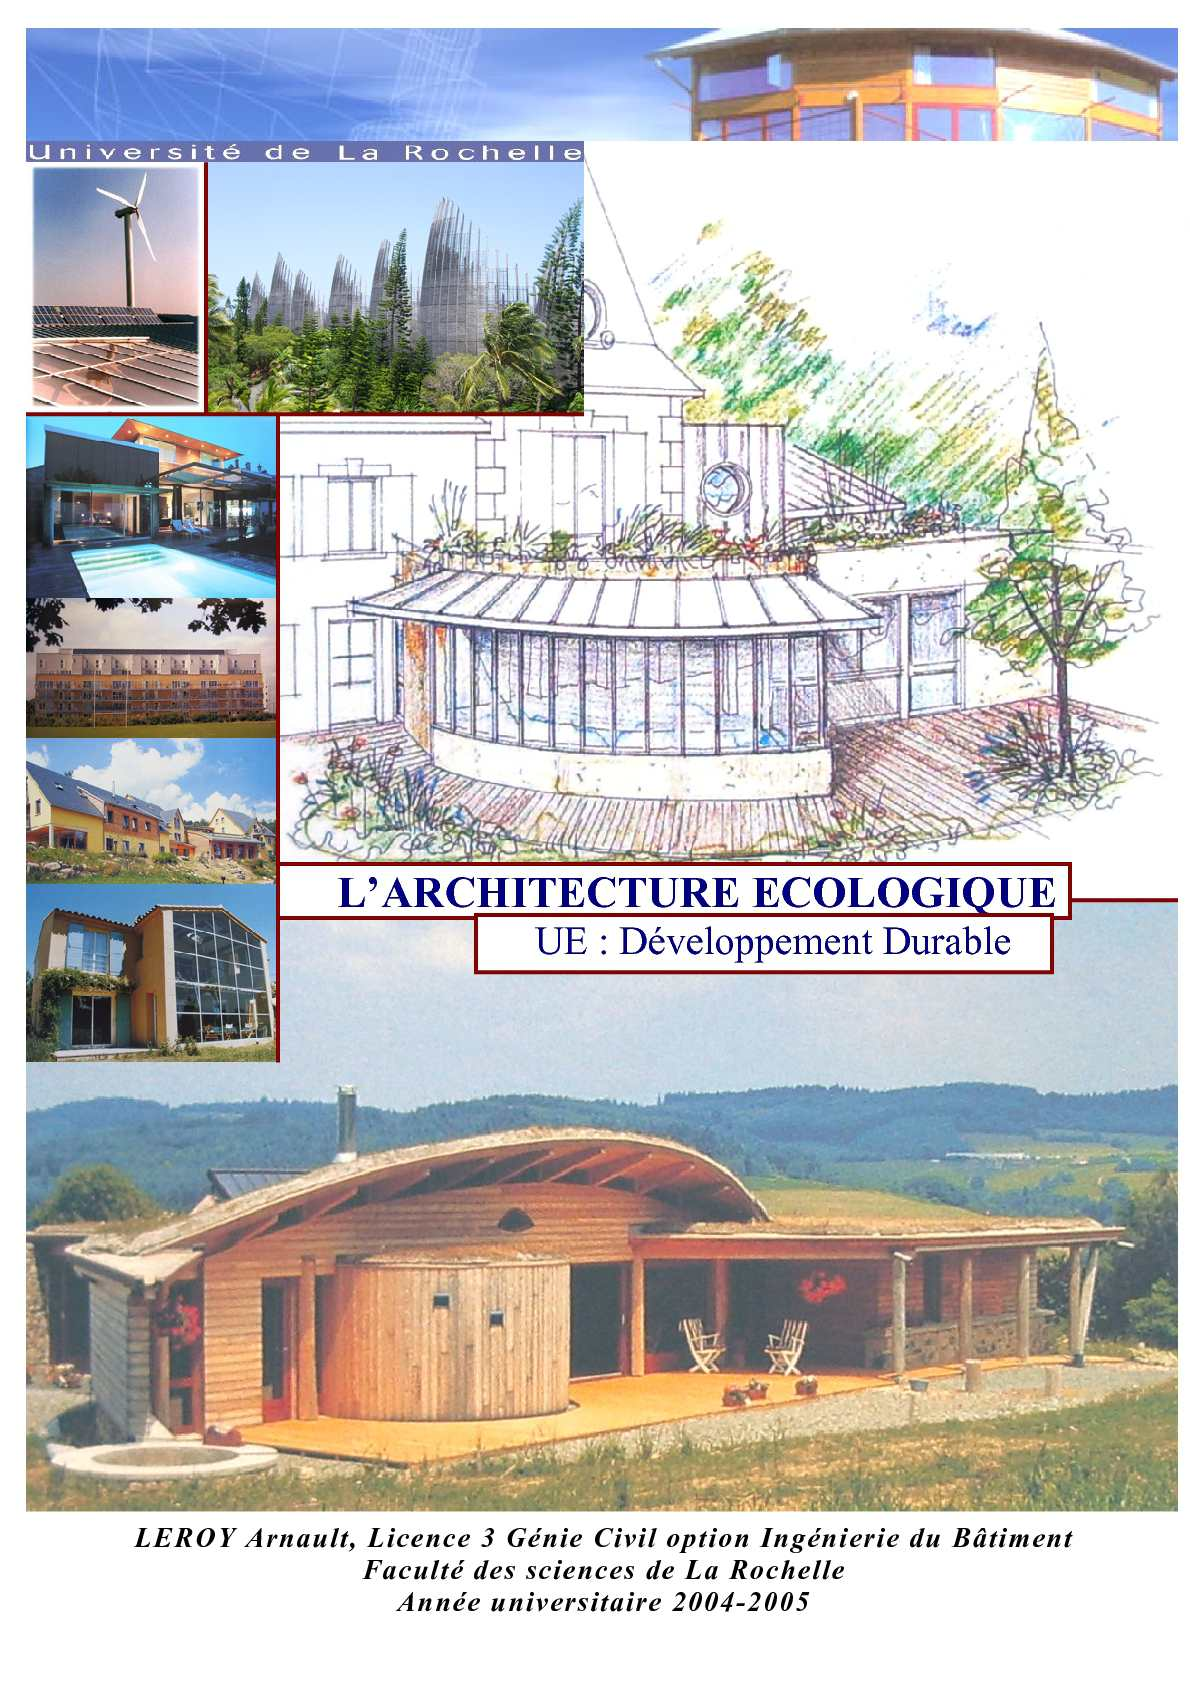 Calam o architecture cologique for Architecture ecologique